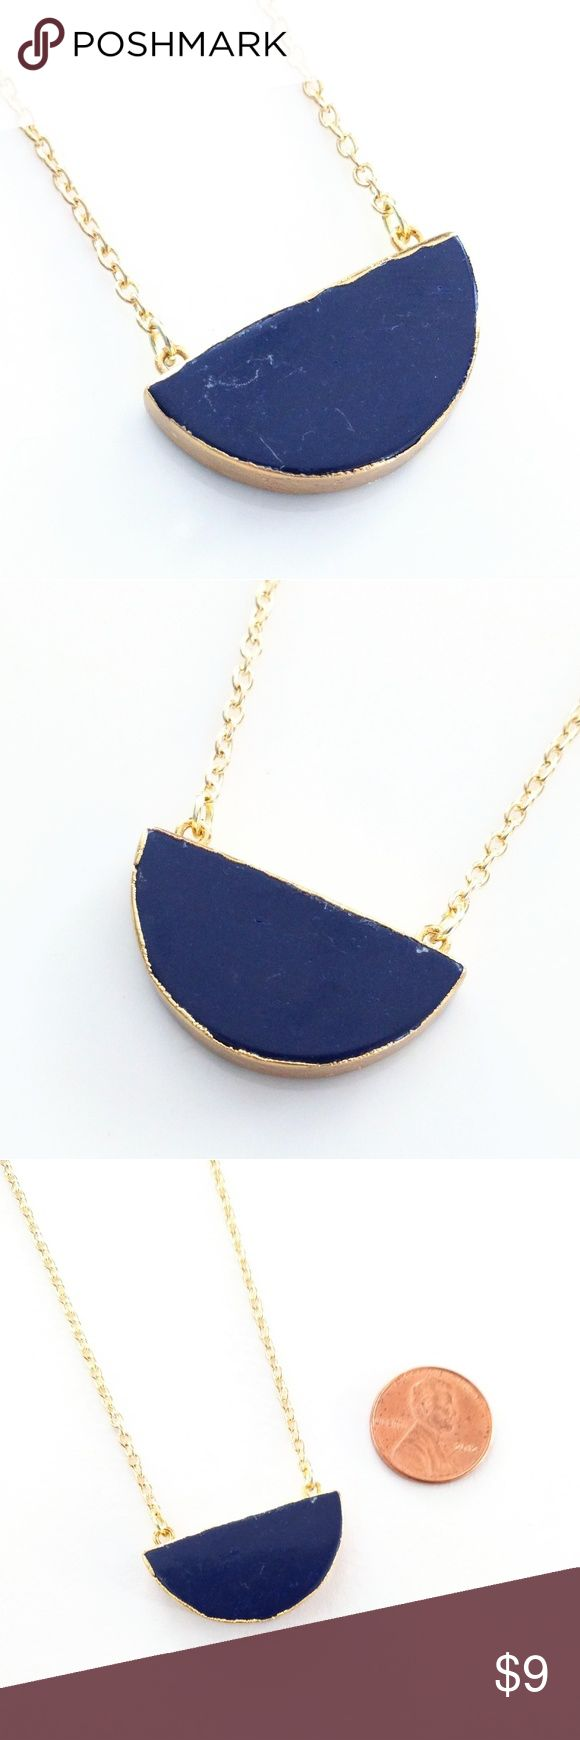 """Gold-plated howlite half moon semicircle necklace True beauty in simplicity!  A dark blue howlite semicircle stone takes center stage for a chic look you'll love!  Nickel and lead free.  About 20.25"""".  PRICE IS FIRM and extremely reasonable, but click """"add to bundle"""" to save 10% on your purchase of 2+ items today! Jewelry Necklaces"""